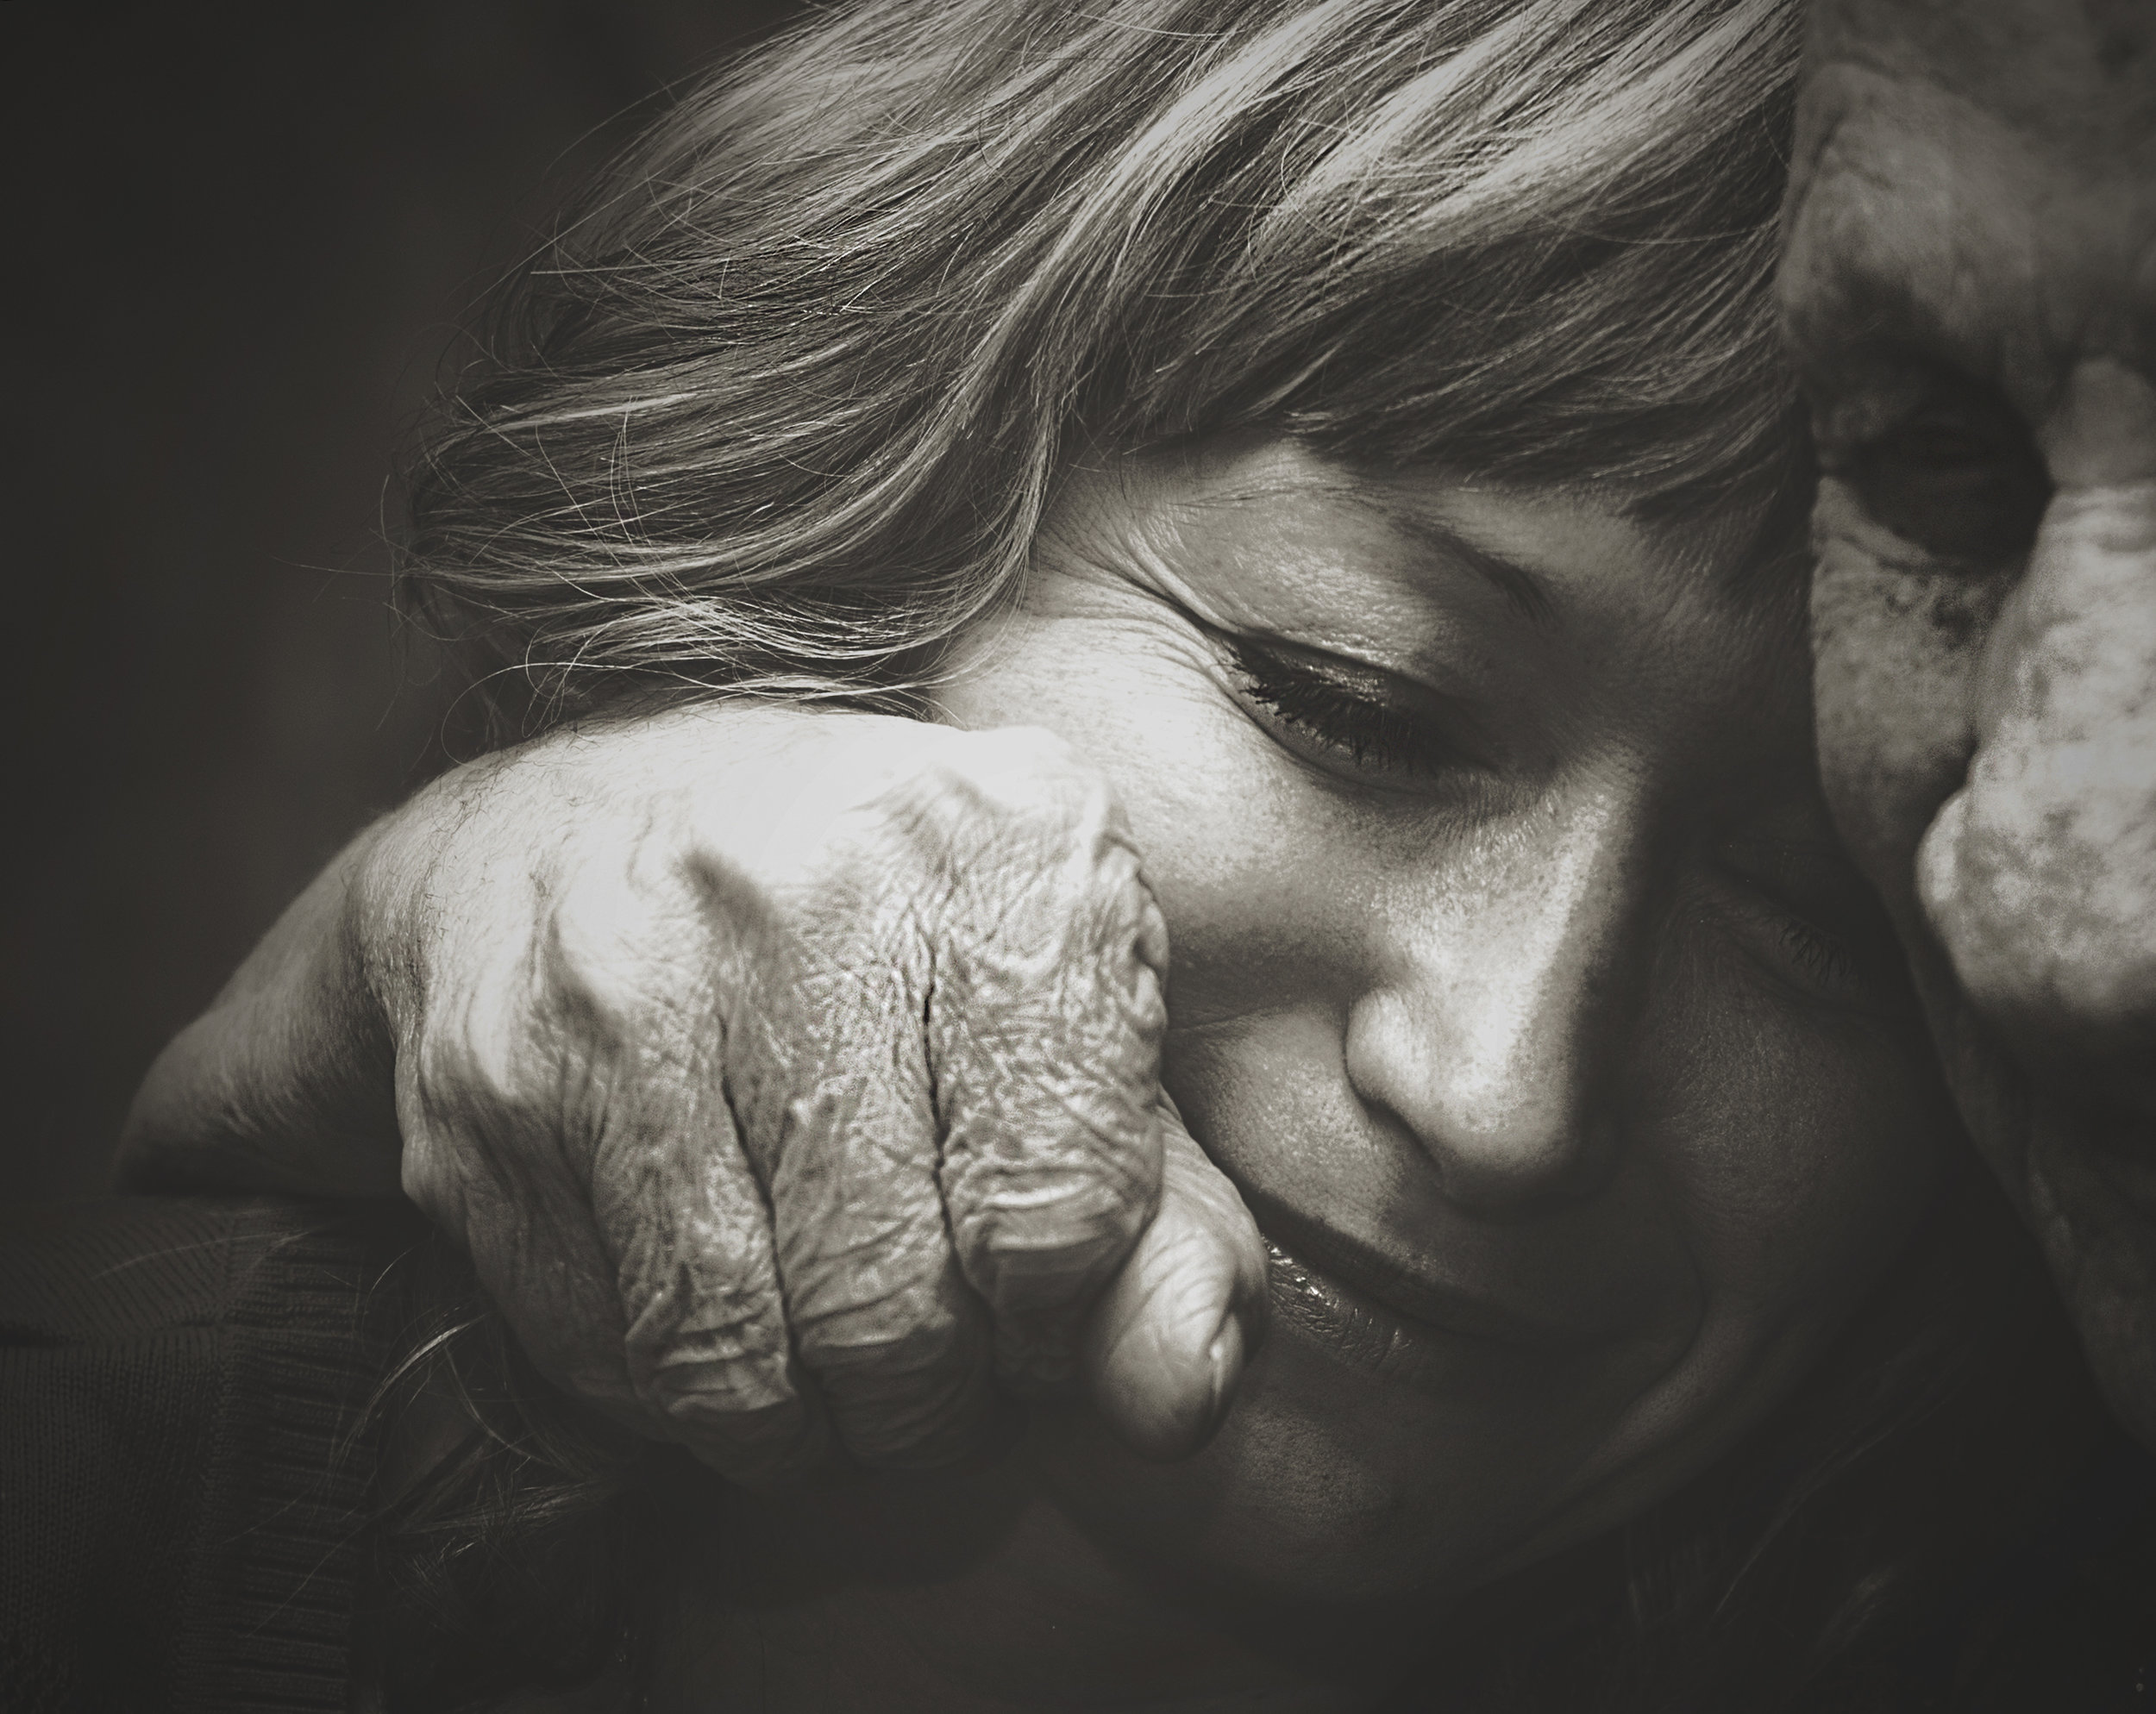 Photographer: Samio Rox   Country: -  Title: In the hugs of the grandfather